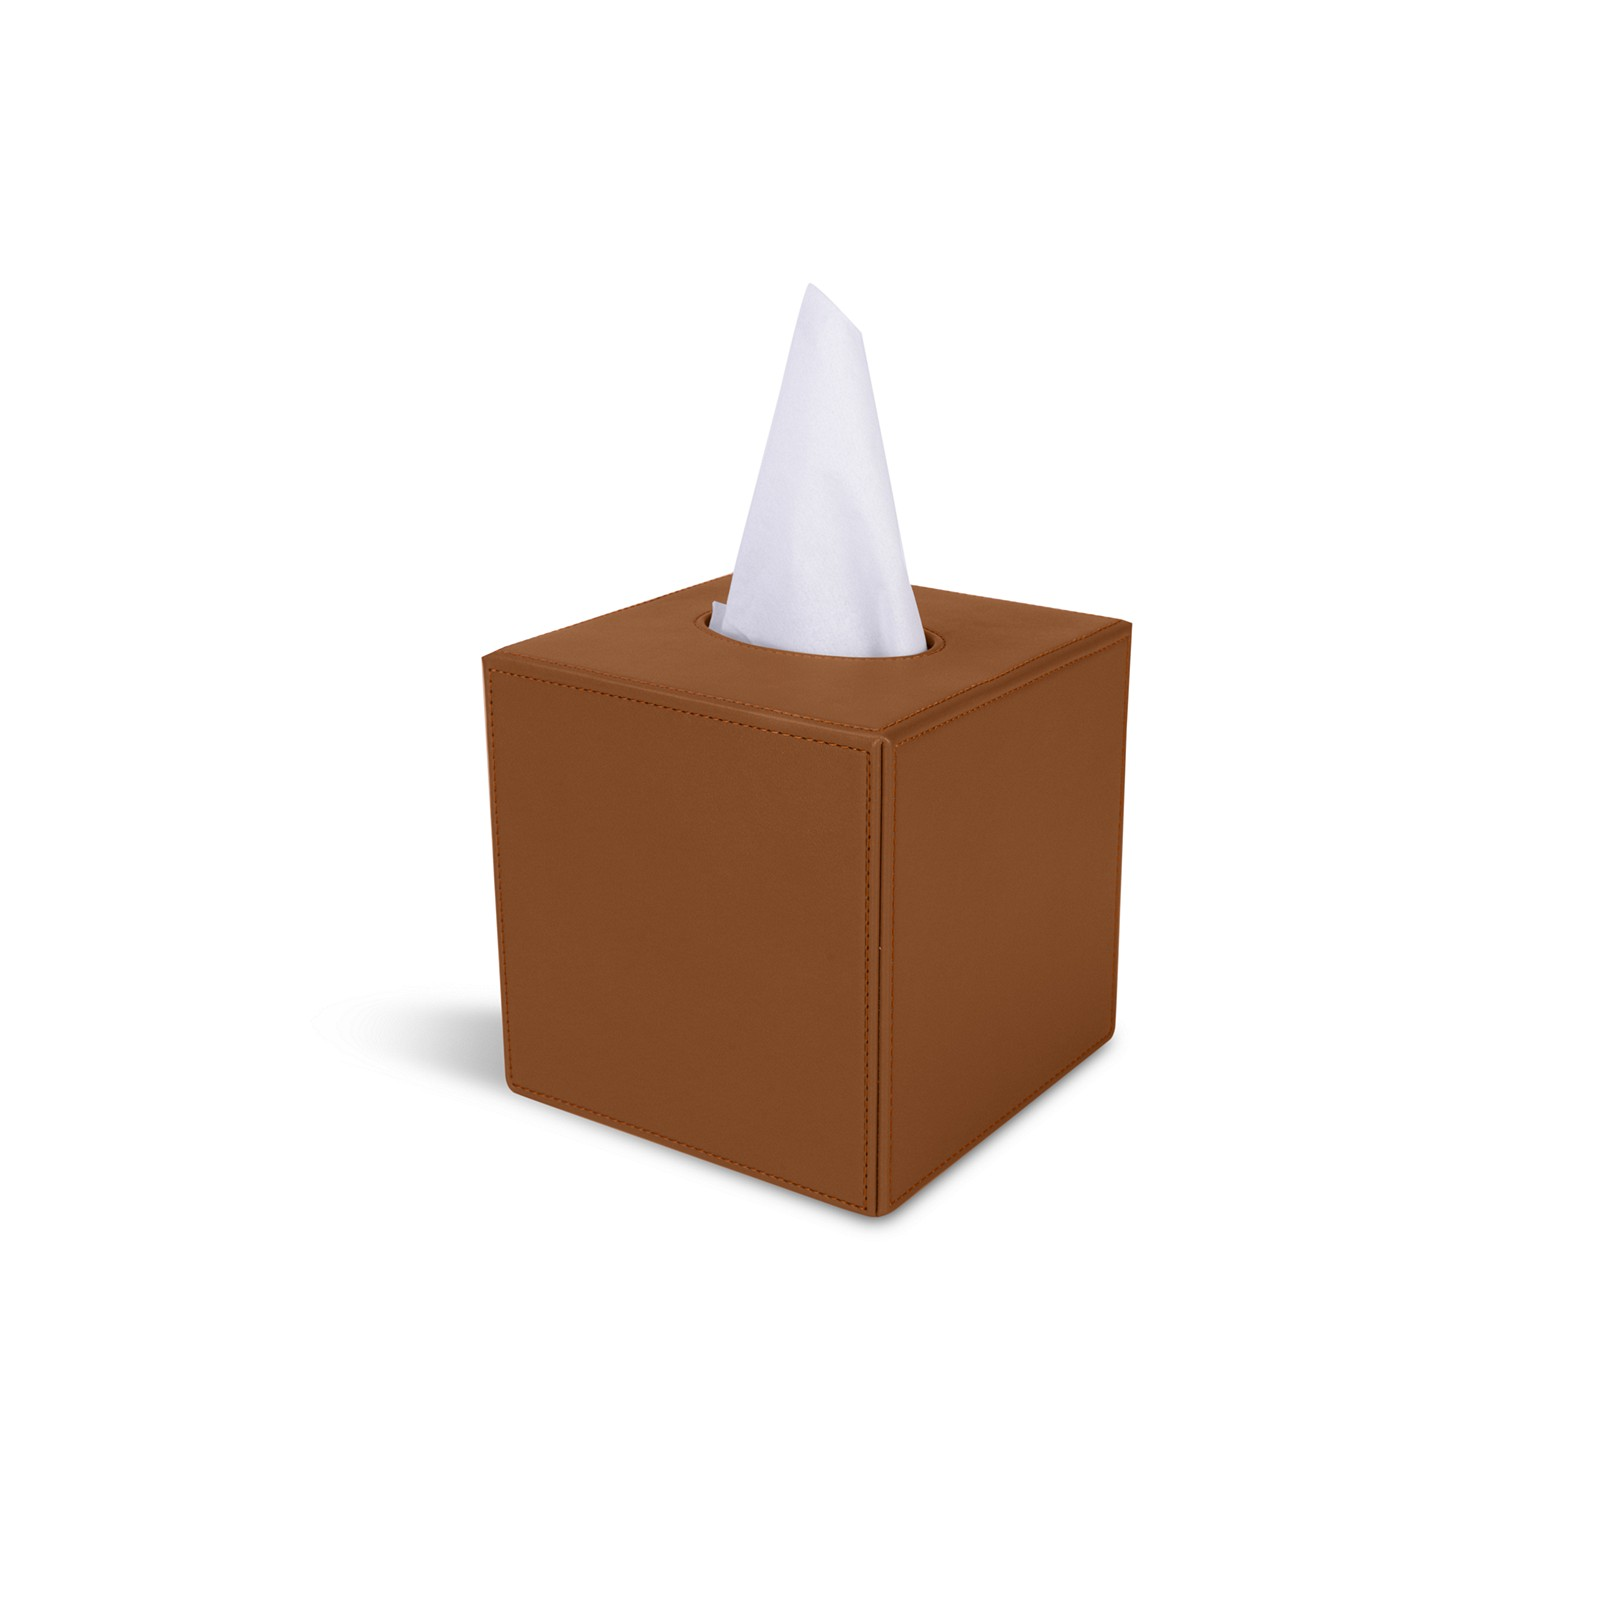 Square Tissue Box Holder Tan Smooth Leather